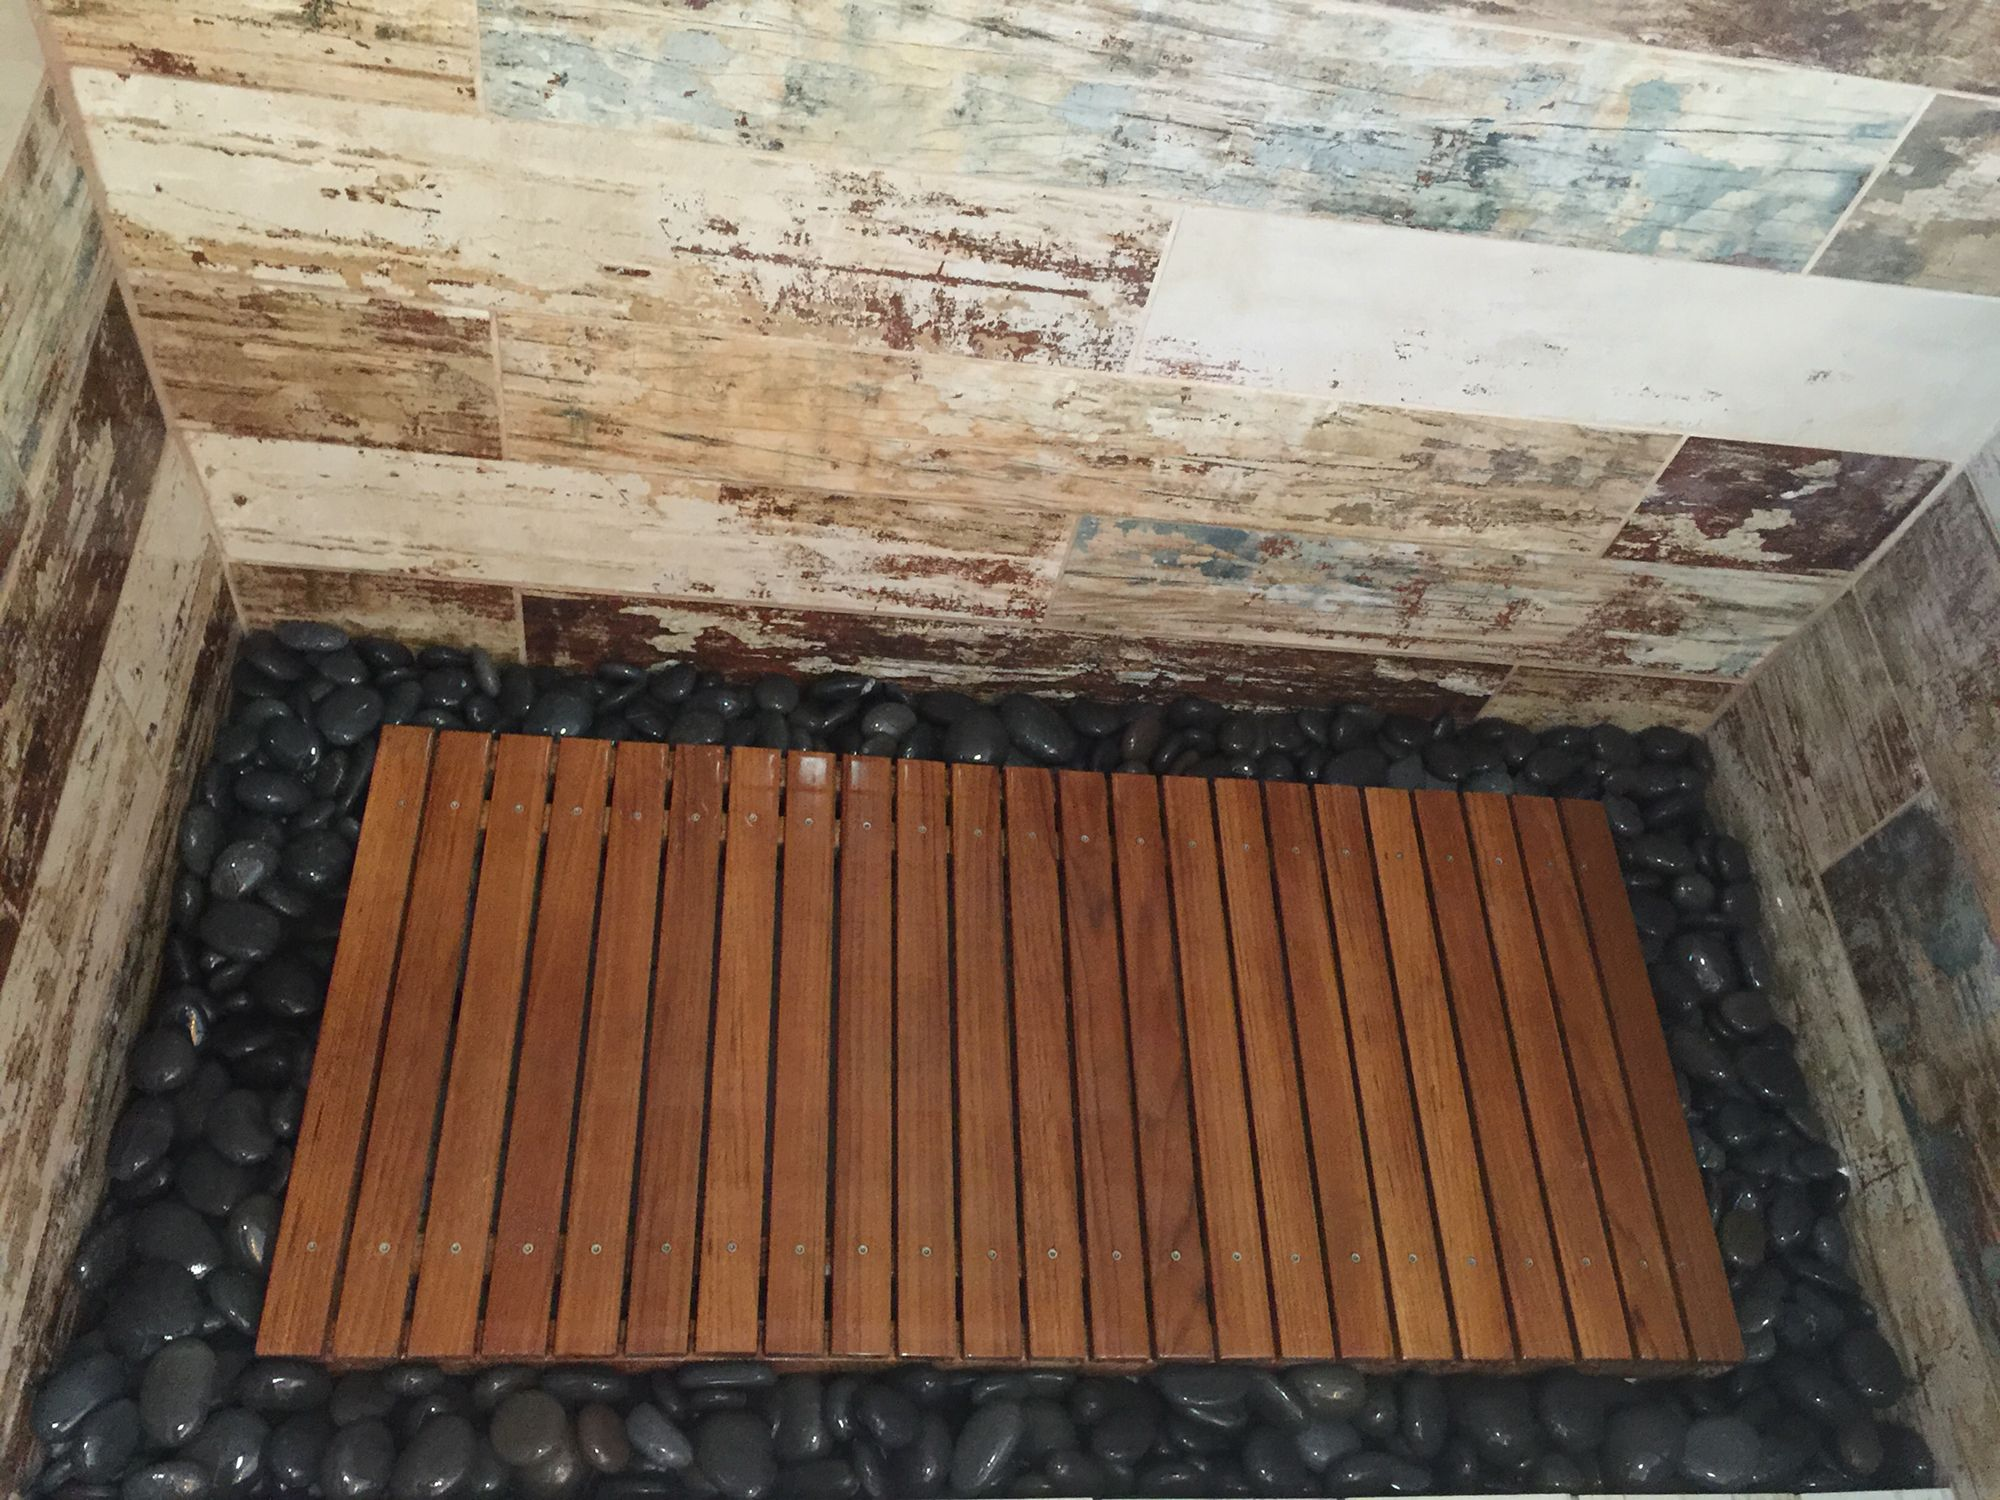 Wood Shower Floor Teak Wood Shower Floor Surrounded By River Rock Walls